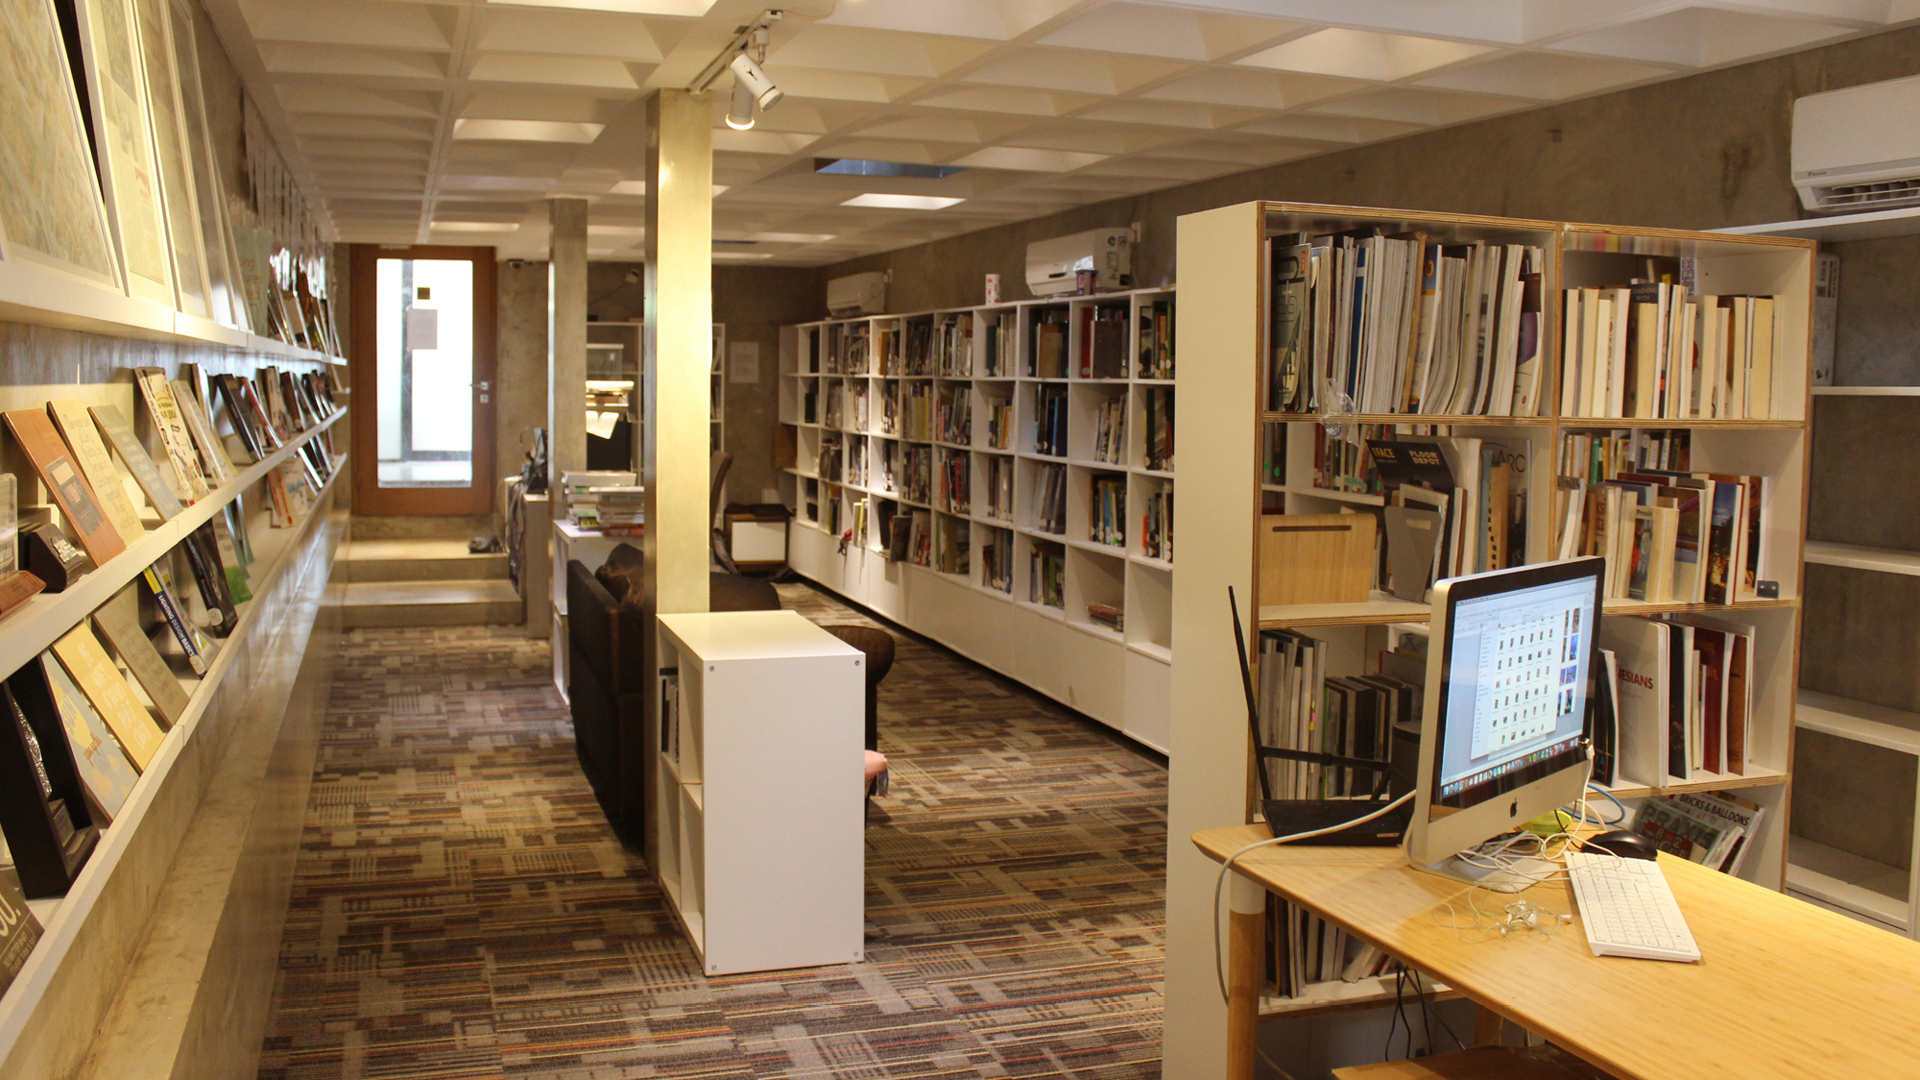 Looking at inspirational public libraries